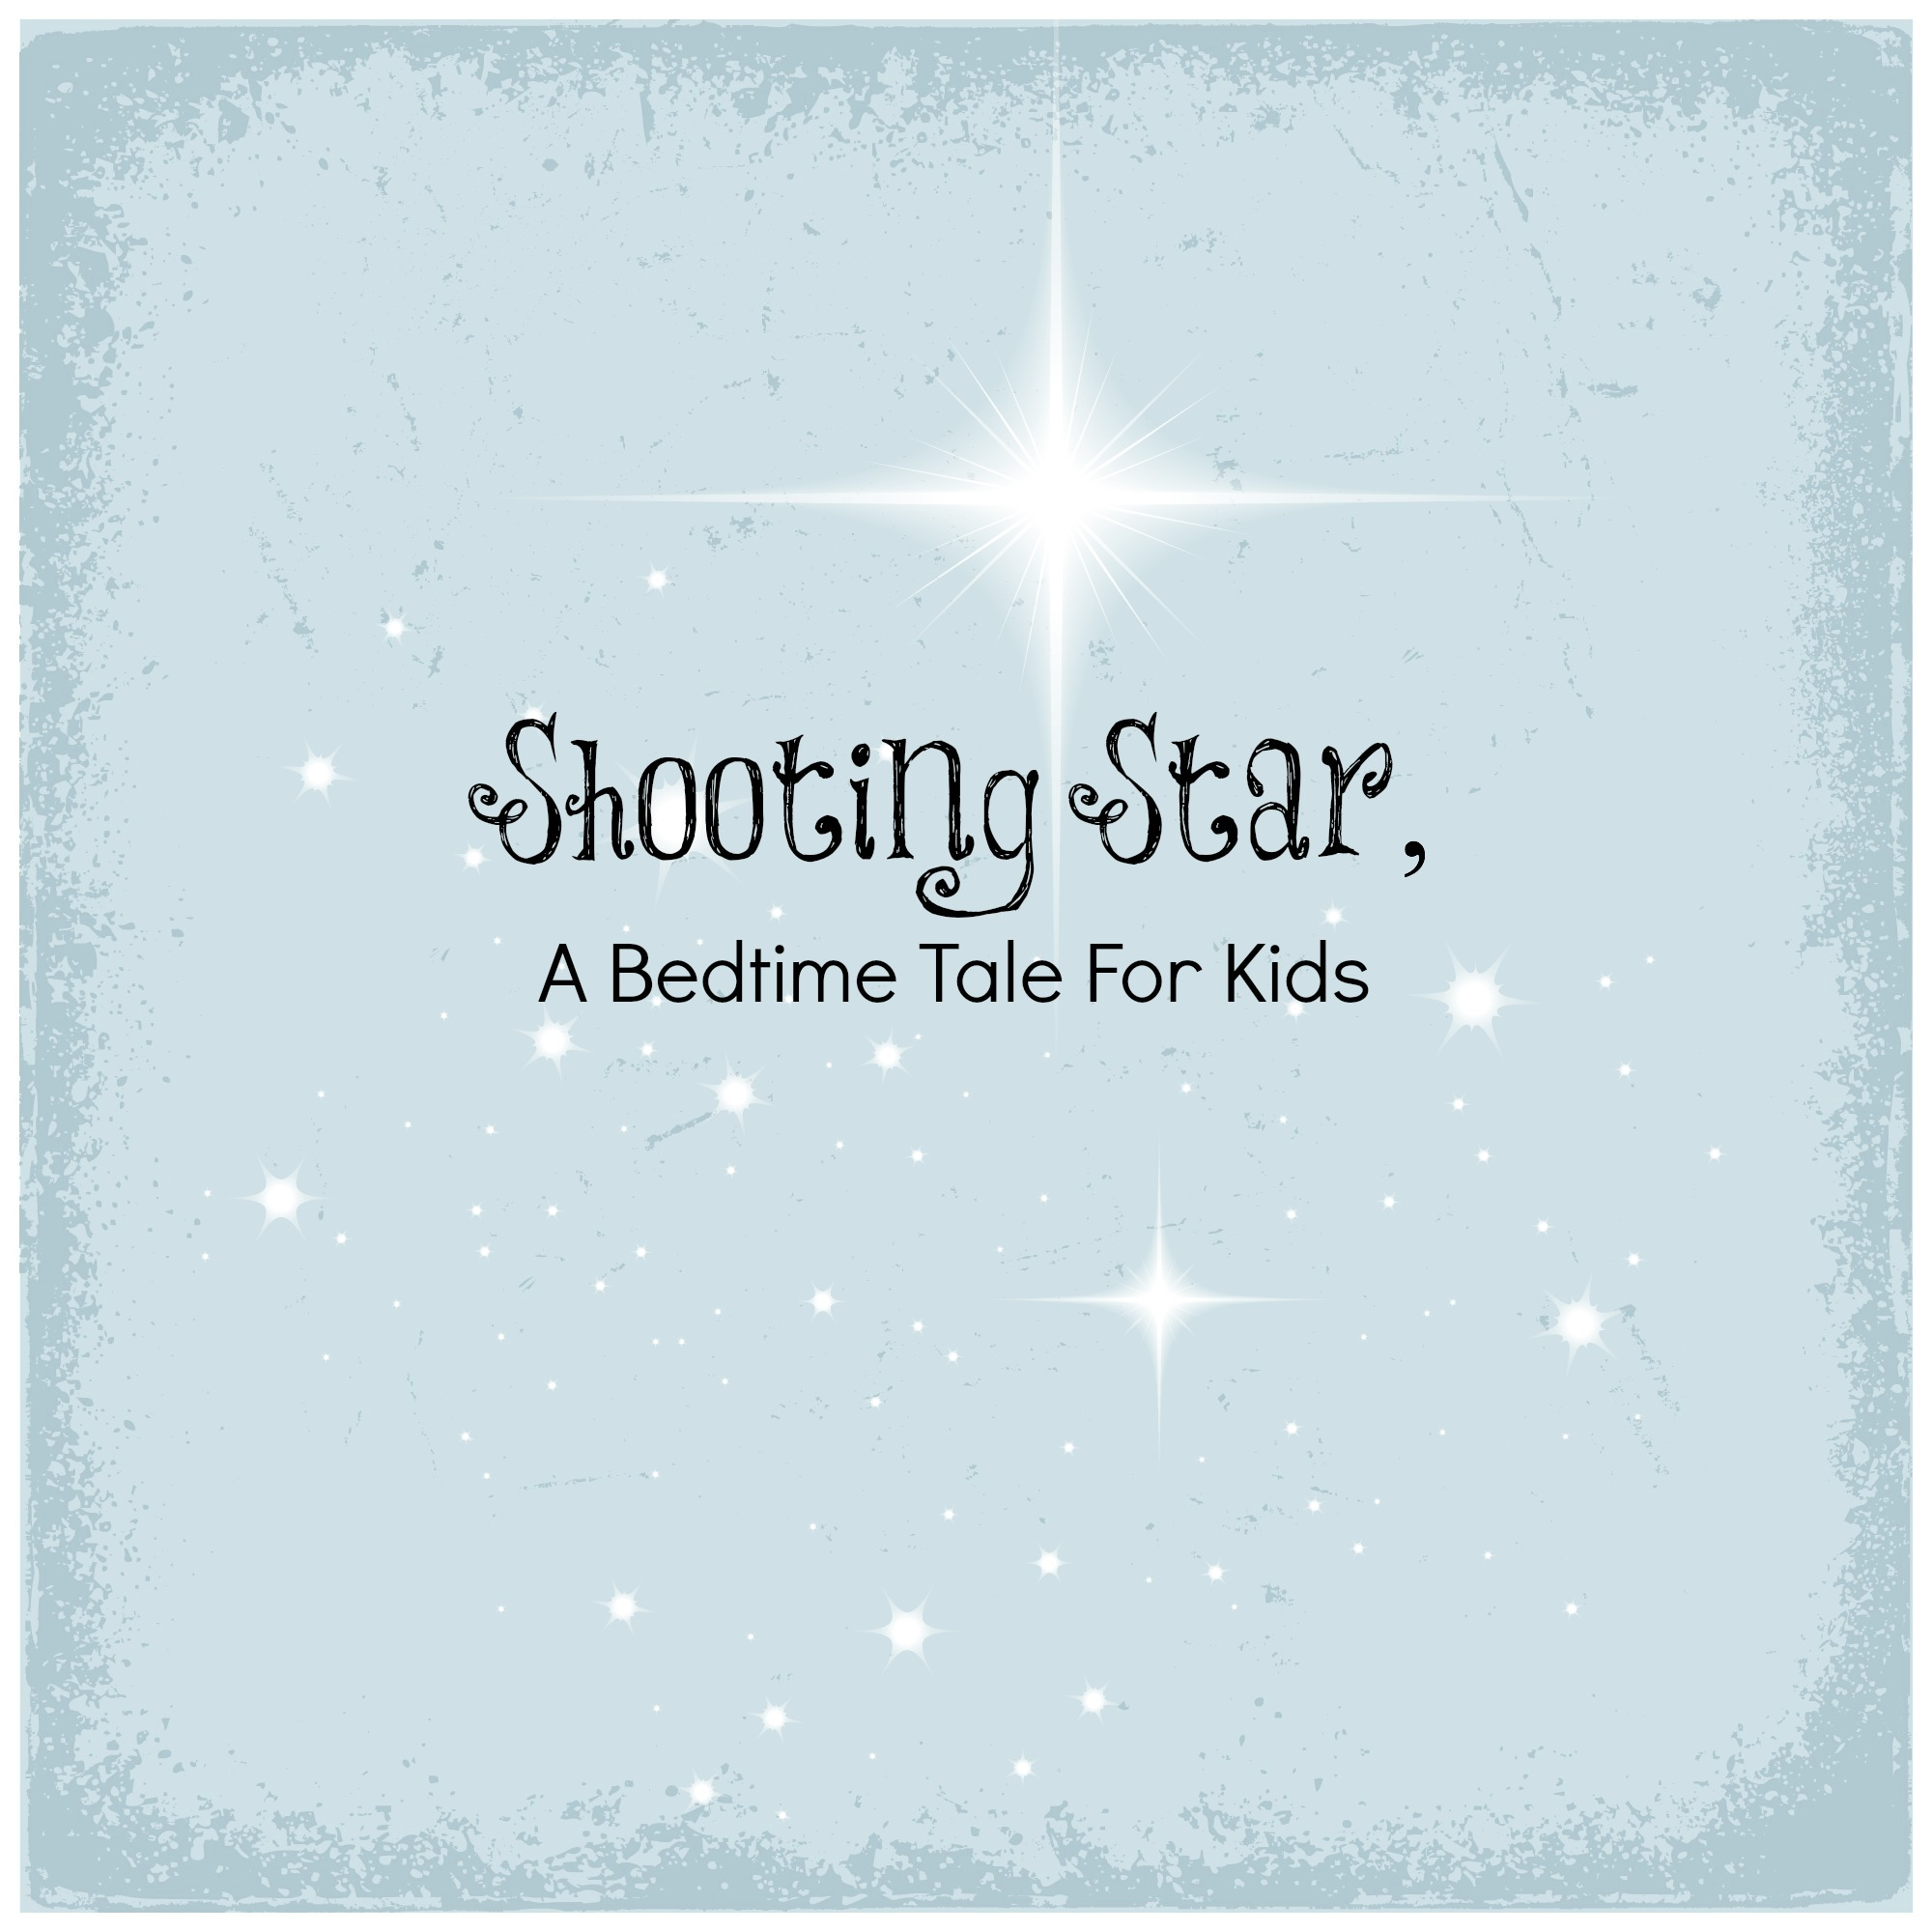 Shooting Star, A Bedtime Tale For Kids